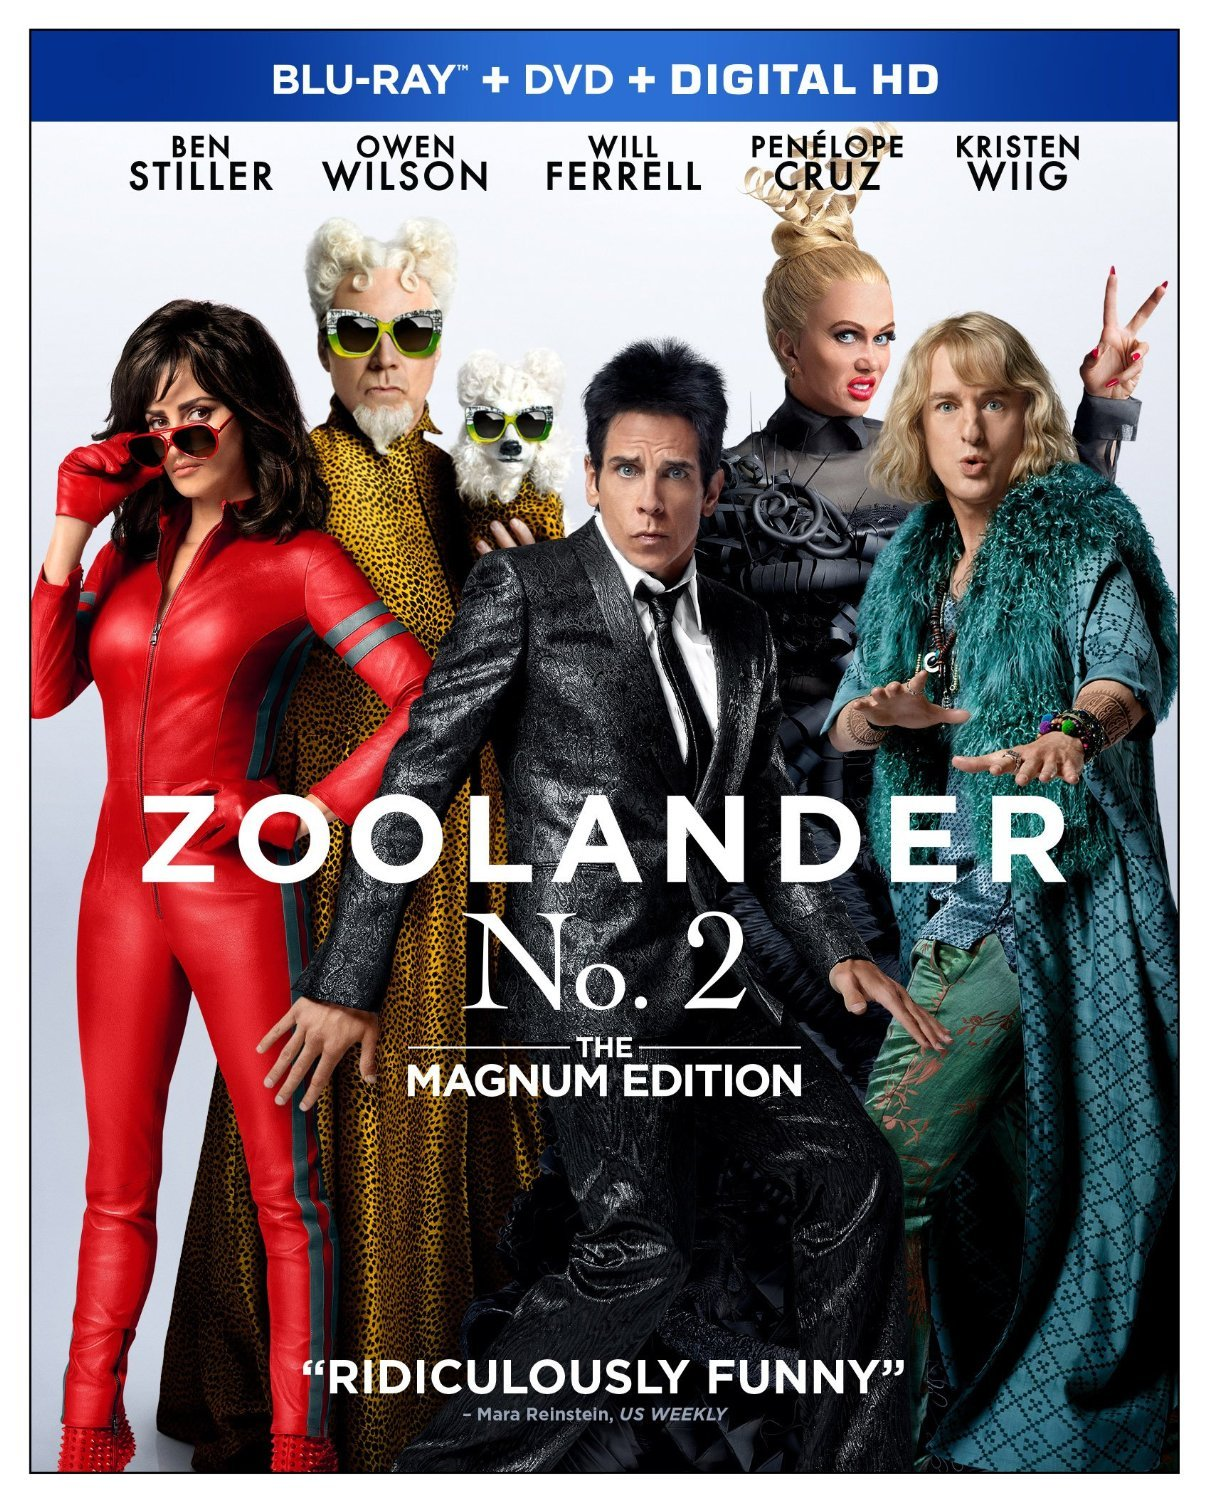 Zoolander No. 2: The Magnum Edition (2016) [Blu-ray] New